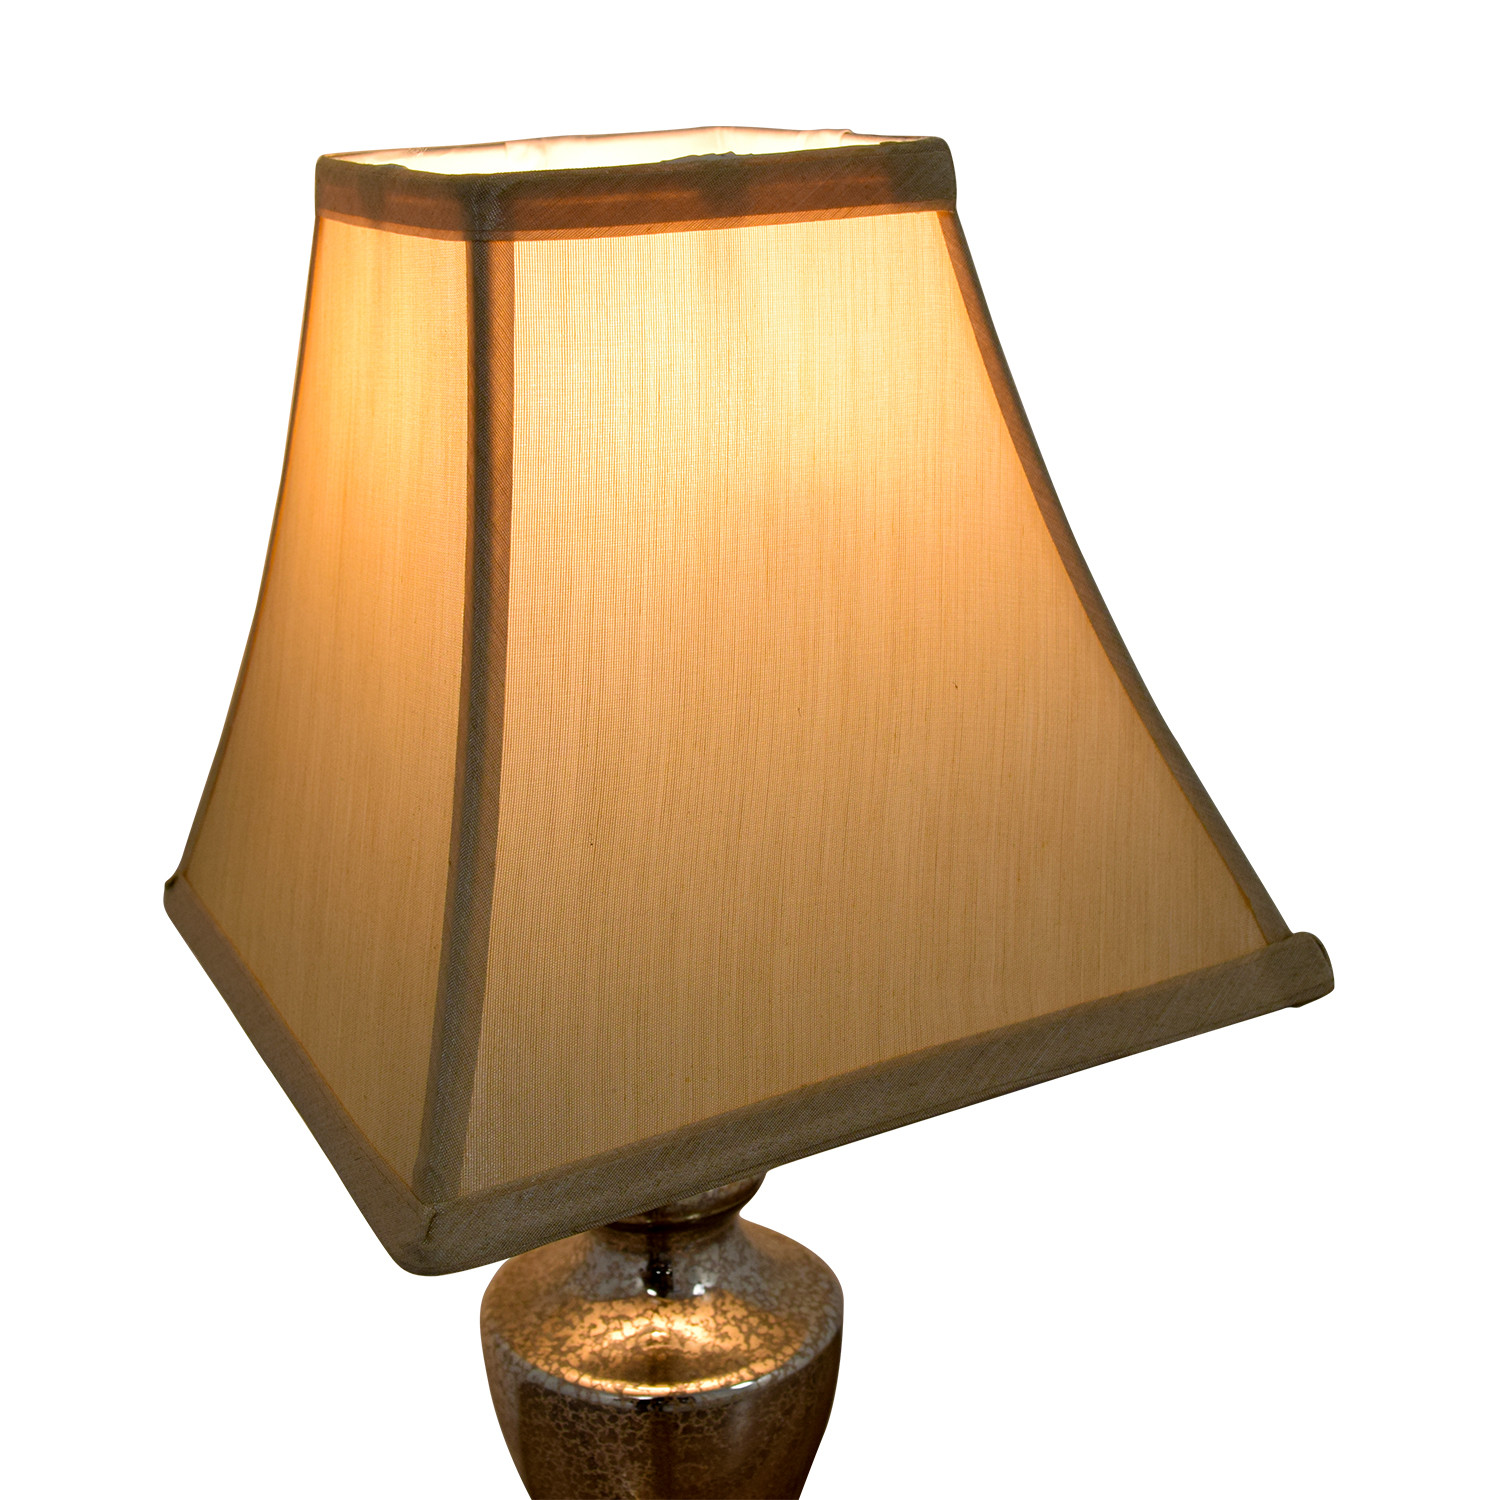 Best ideas about Bed Bath And Beyond Desk Lamp . Save or Pin OFF Bed Bath and Beyond Bed Bath and Beyond Slender Now.